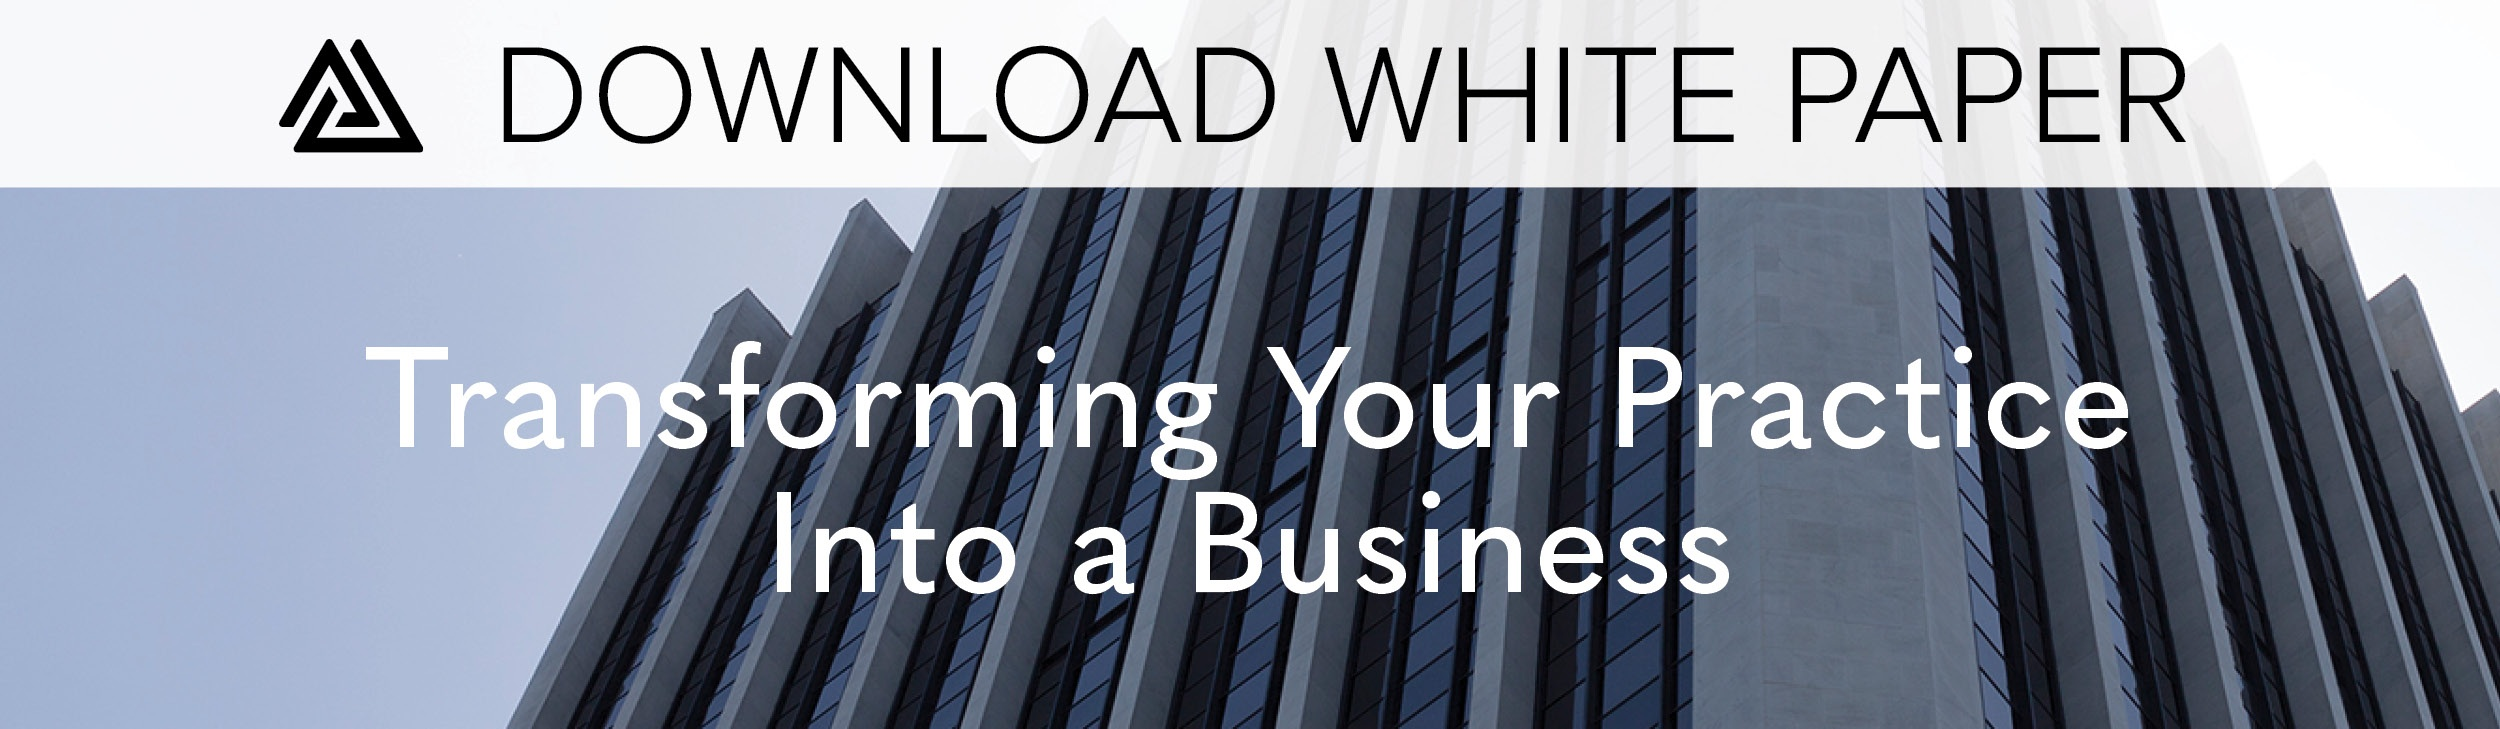 Download White Paper: Transforming Your Practice Into a Business